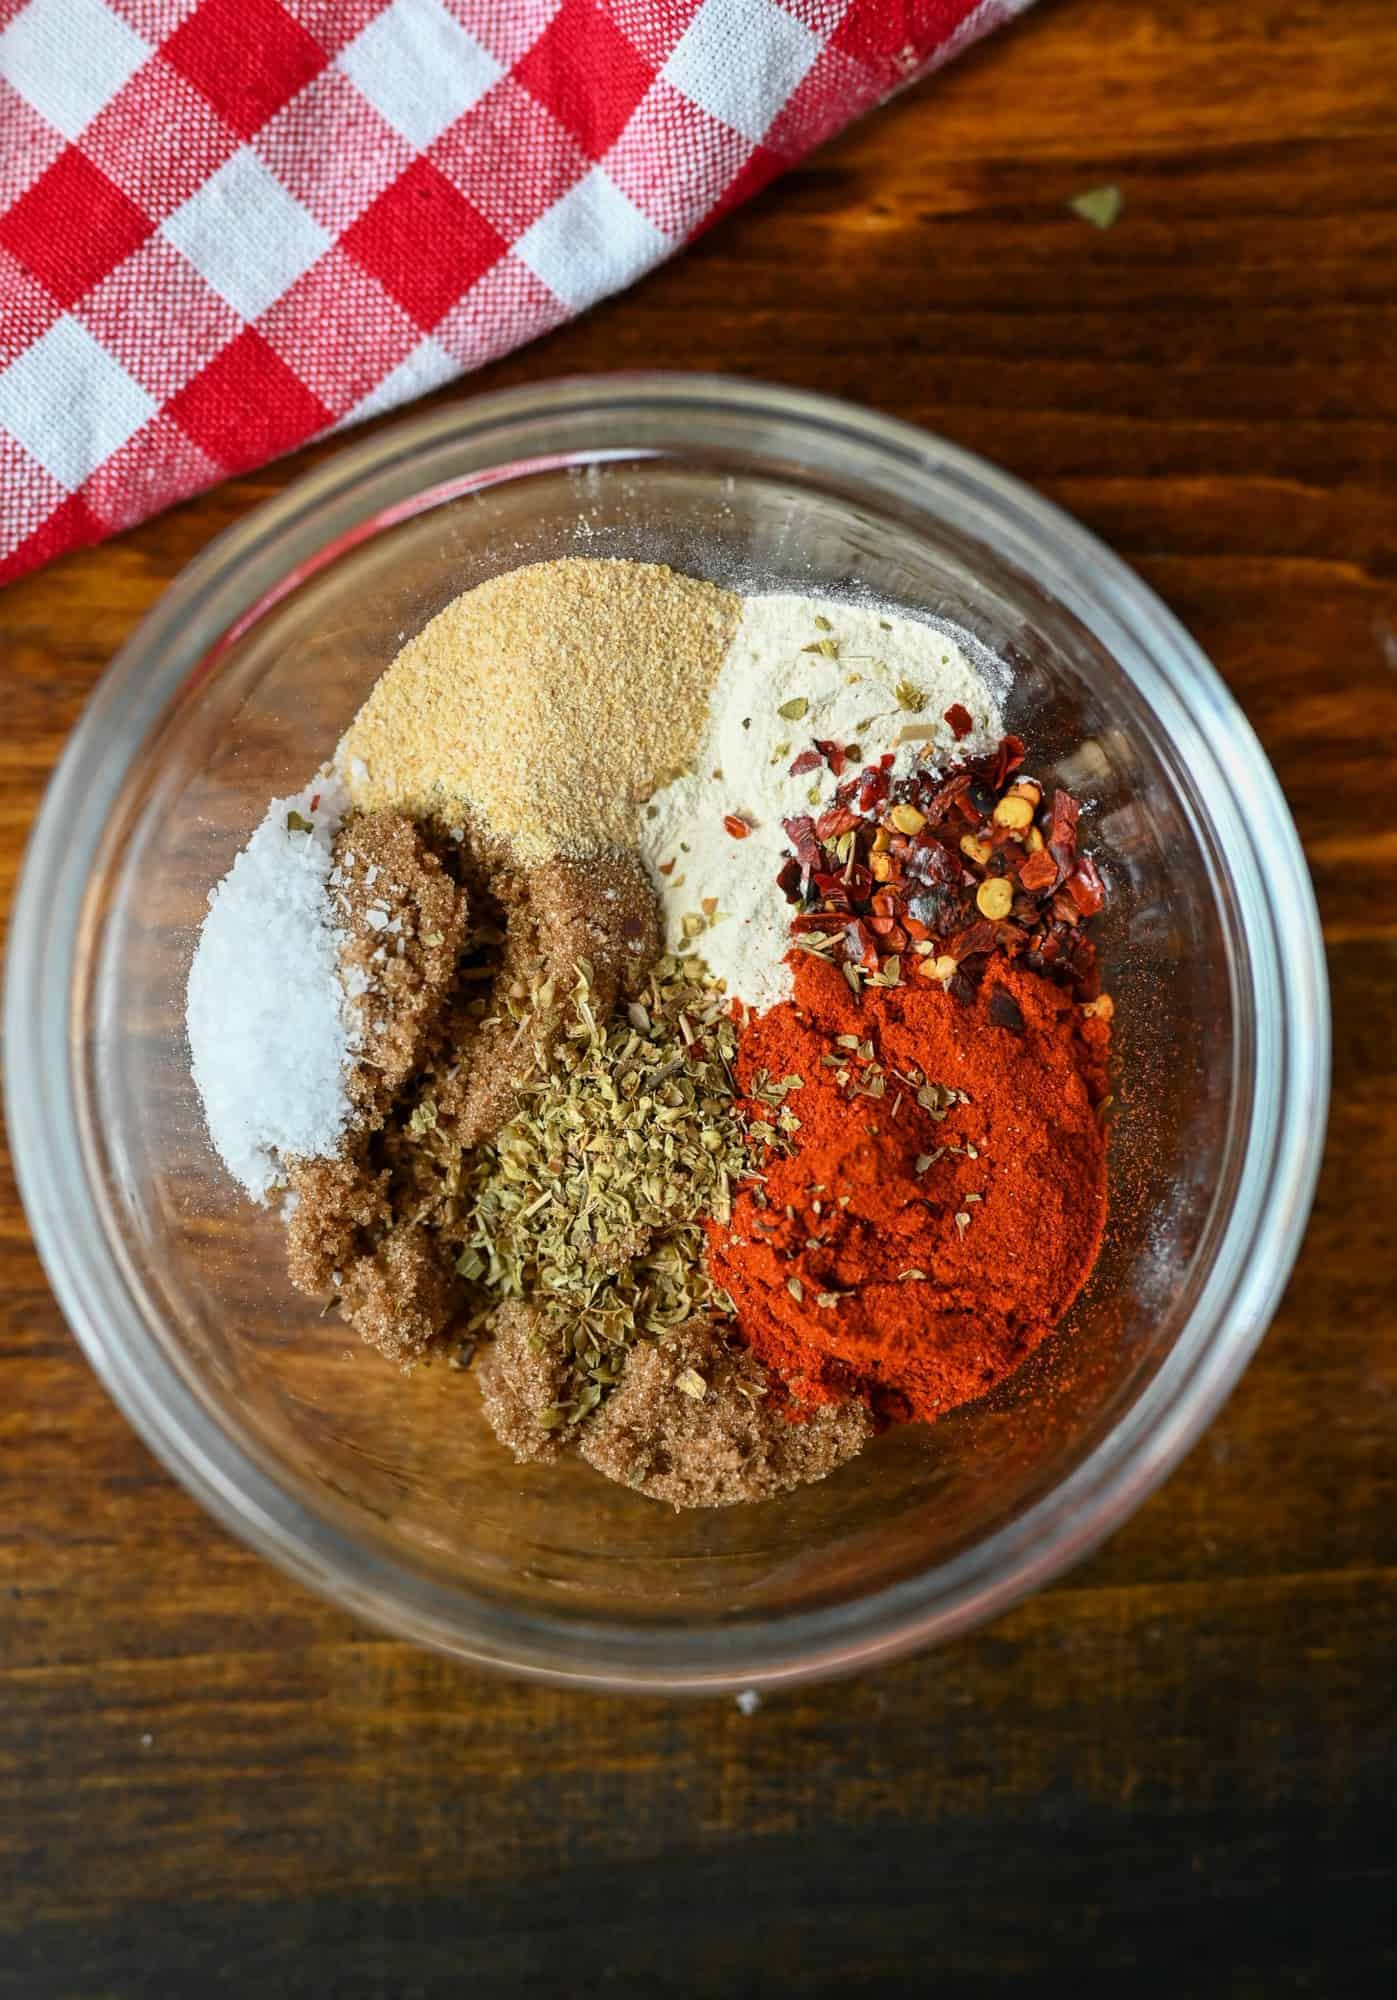 A combination of spices in a small bowl to put on the raw chicken.